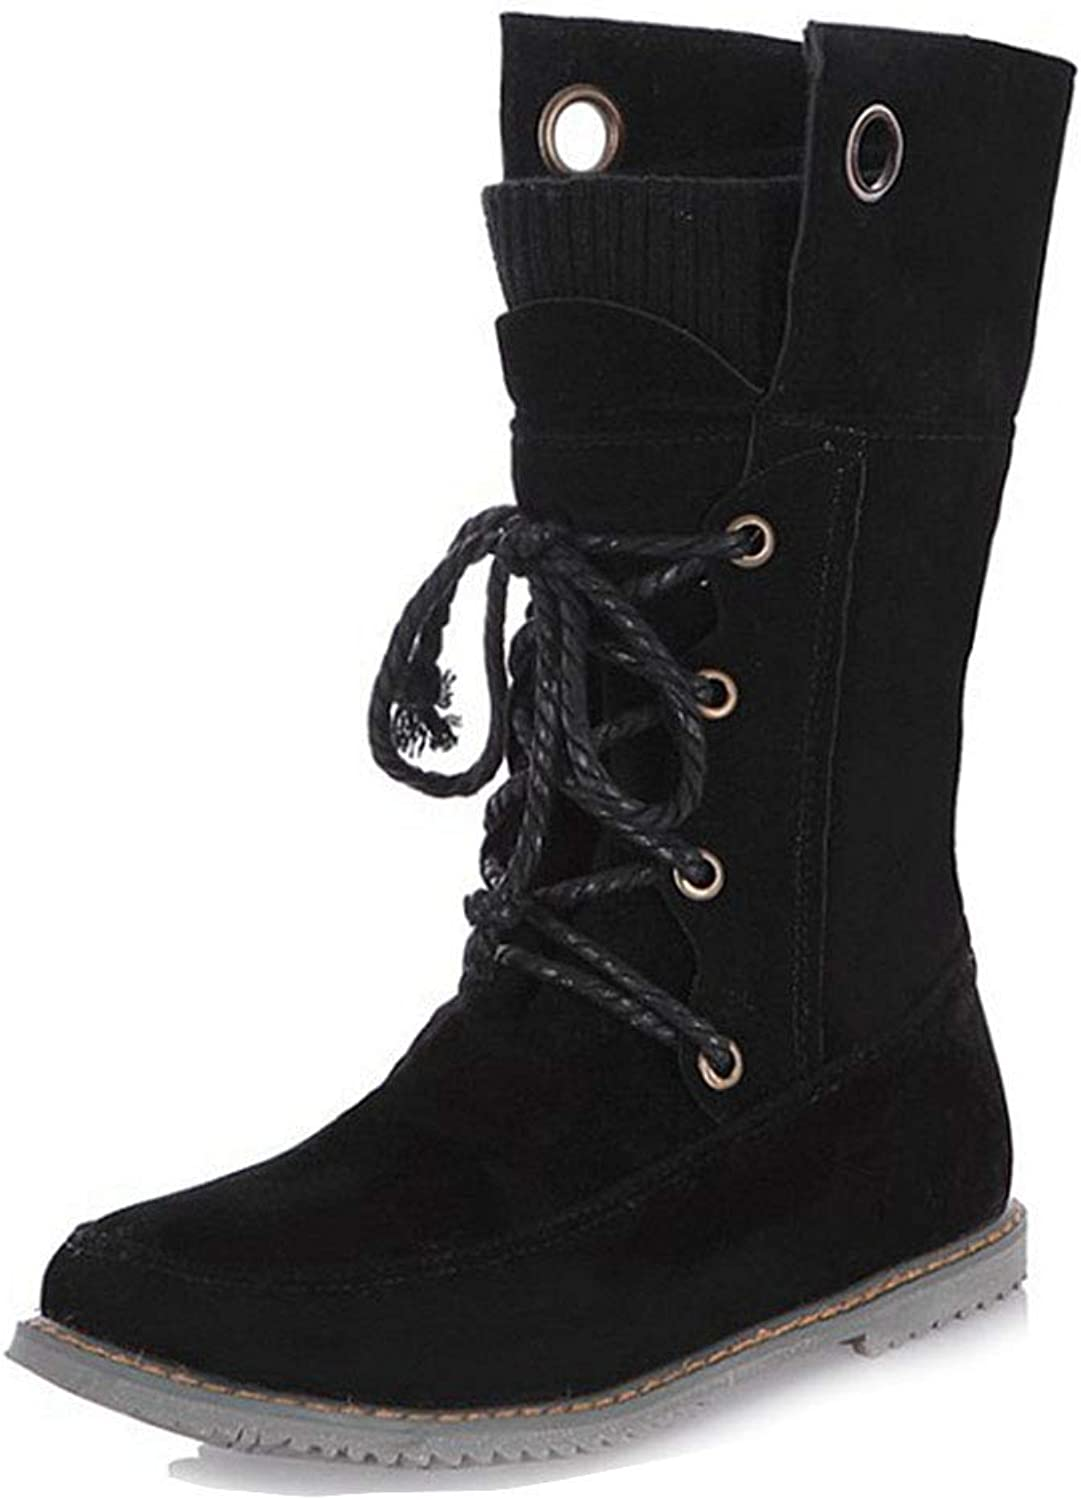 Fashion shoesbox Women's Lace Up Flat Combat Ankle Boots Round Toe Comfort Riding Bootie Casual Walking Short Martin Boot